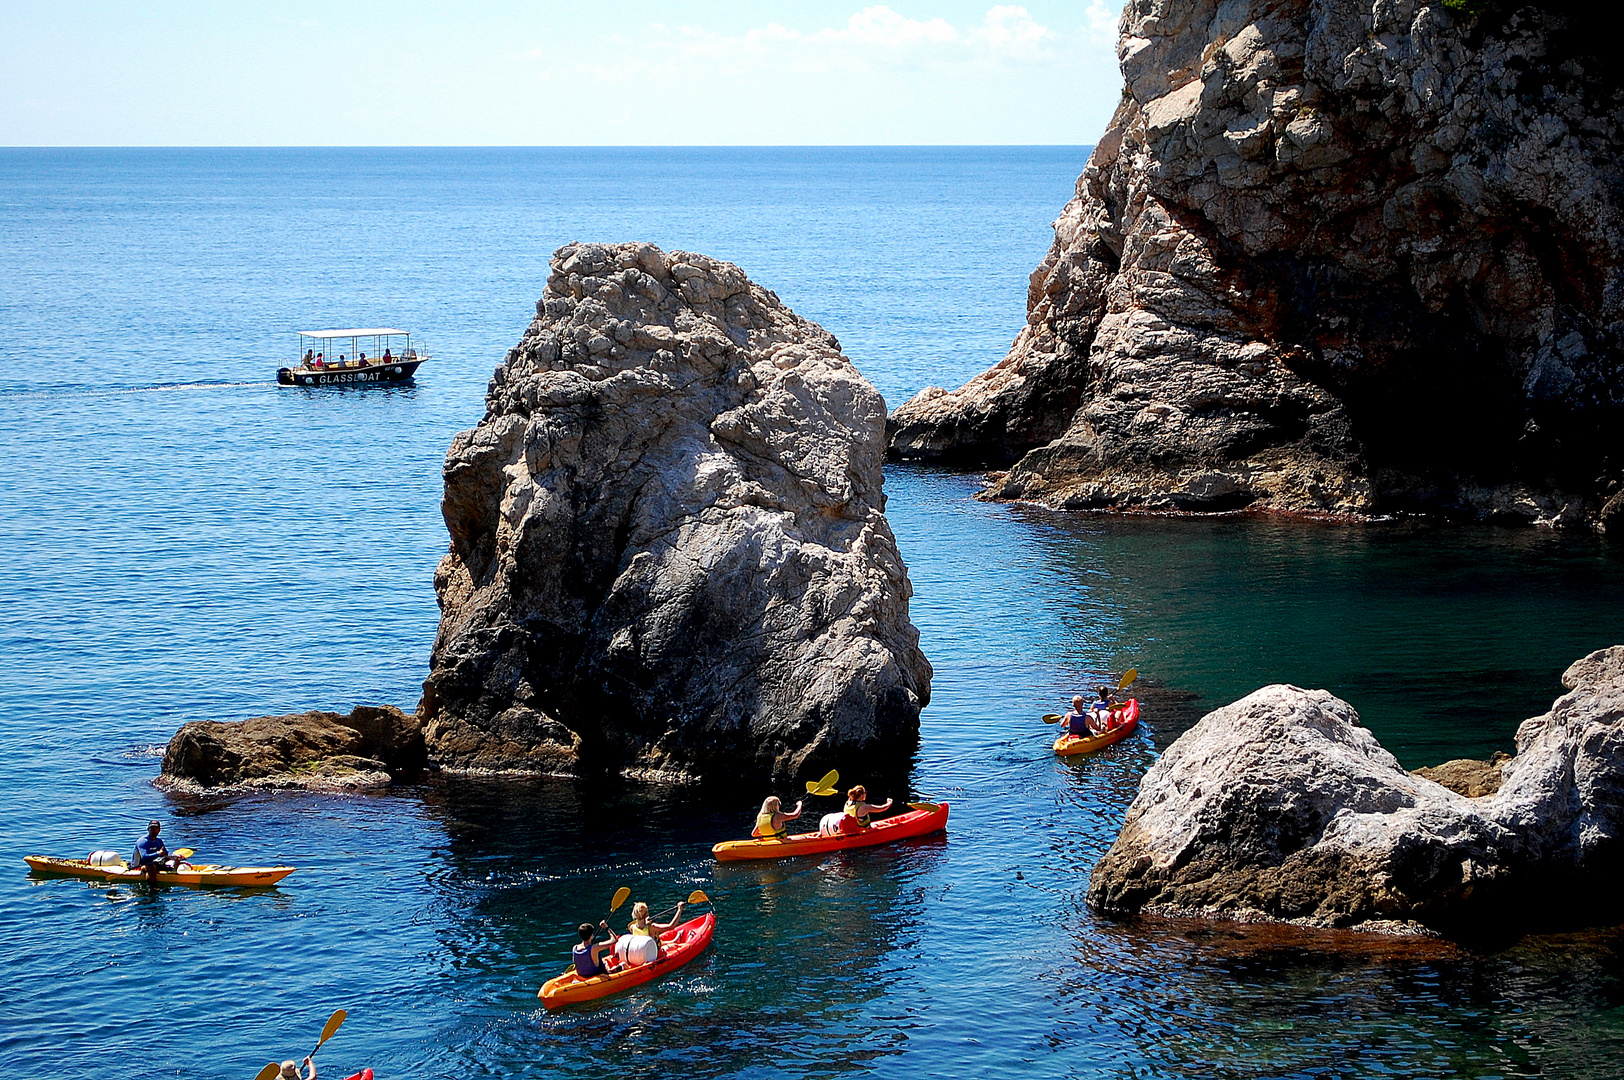 Adriatic Sea Canoeing